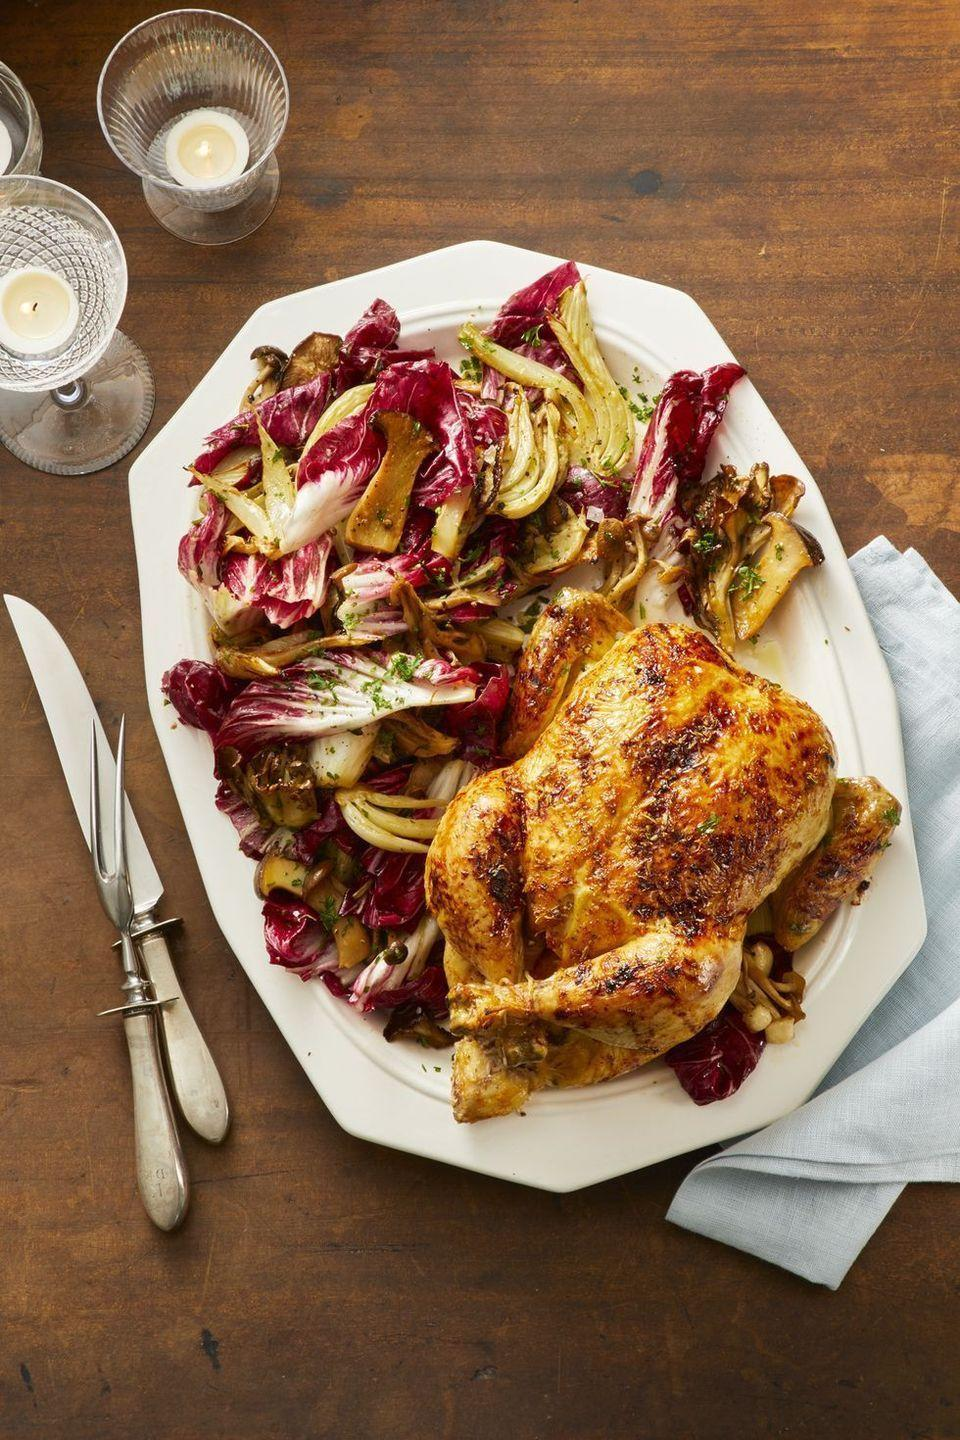 """<p>Bitter lettuce, fresh herbs, and a juicy roast chicken make this dinner ideal for your Passover table.</p><p><em><a href=""""https://www.goodhousekeeping.com/food-recipes/a25323997/orange-ginger-roast-chicken-with-fennel-and-radicchio-salad-recipe/"""" rel=""""nofollow noopener"""" target=""""_blank"""" data-ylk=""""slk:Get the recipe for Orange-Ginger Roast Chicken with Fennel and Radicchio Salad »"""" class=""""link rapid-noclick-resp"""">Get the recipe for Orange-Ginger Roast Chicken with Fennel and Radicchio Salad »</a></em></p>"""